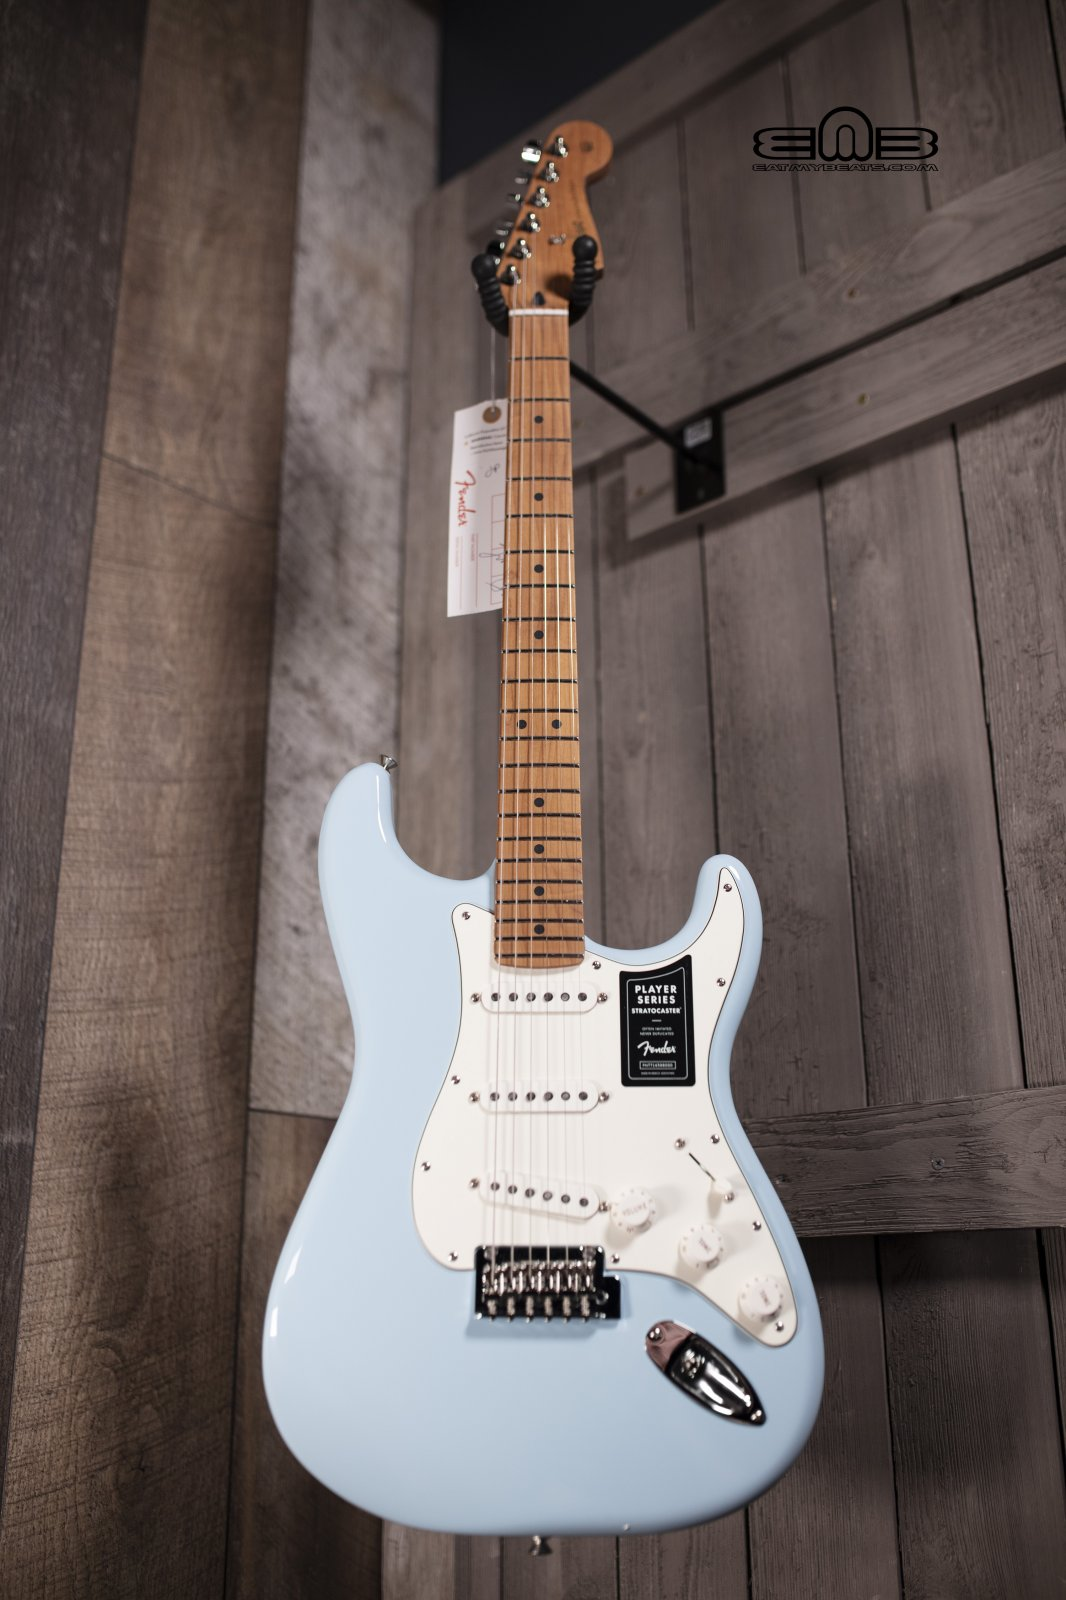 Fender Limited Edition Player Stratocaster Electric Guitar with Roasted Maple  Neck, Maple Fingerboard, Sonic Blue